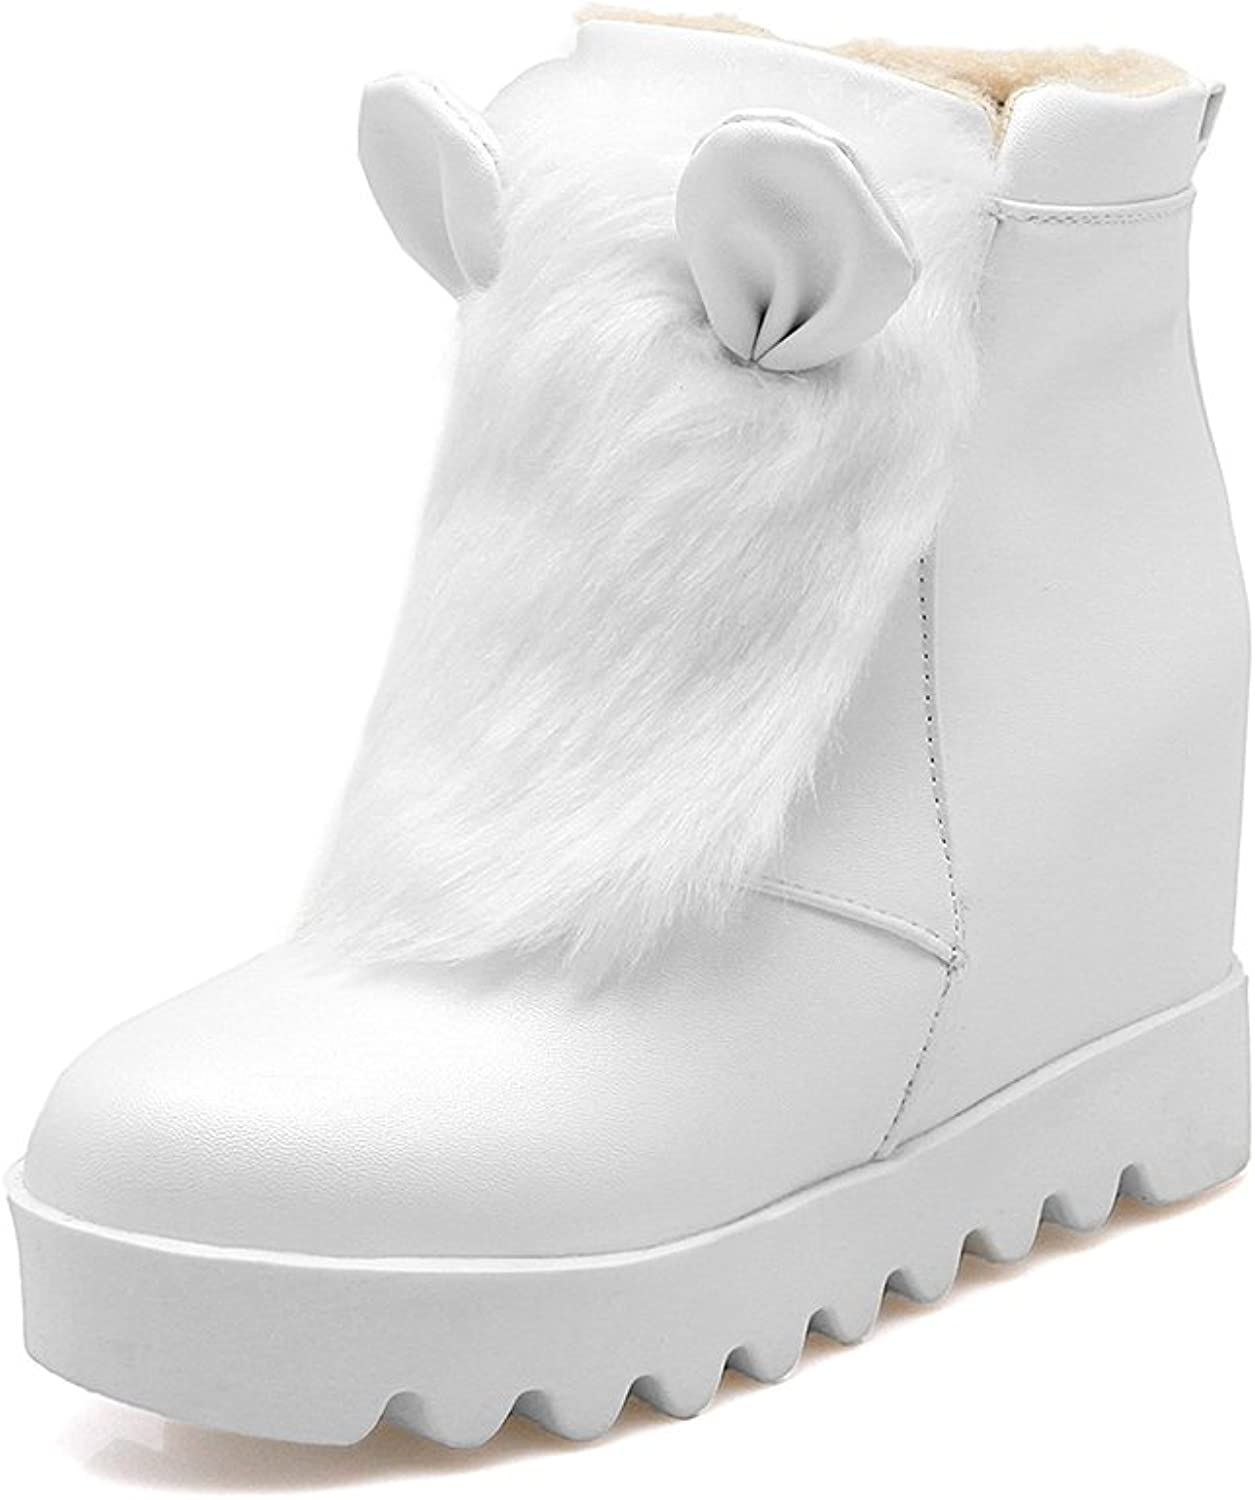 Rongzhi Womens Ankle Snow Boots Zipper Warm Plush Platform Heels Booties Ear